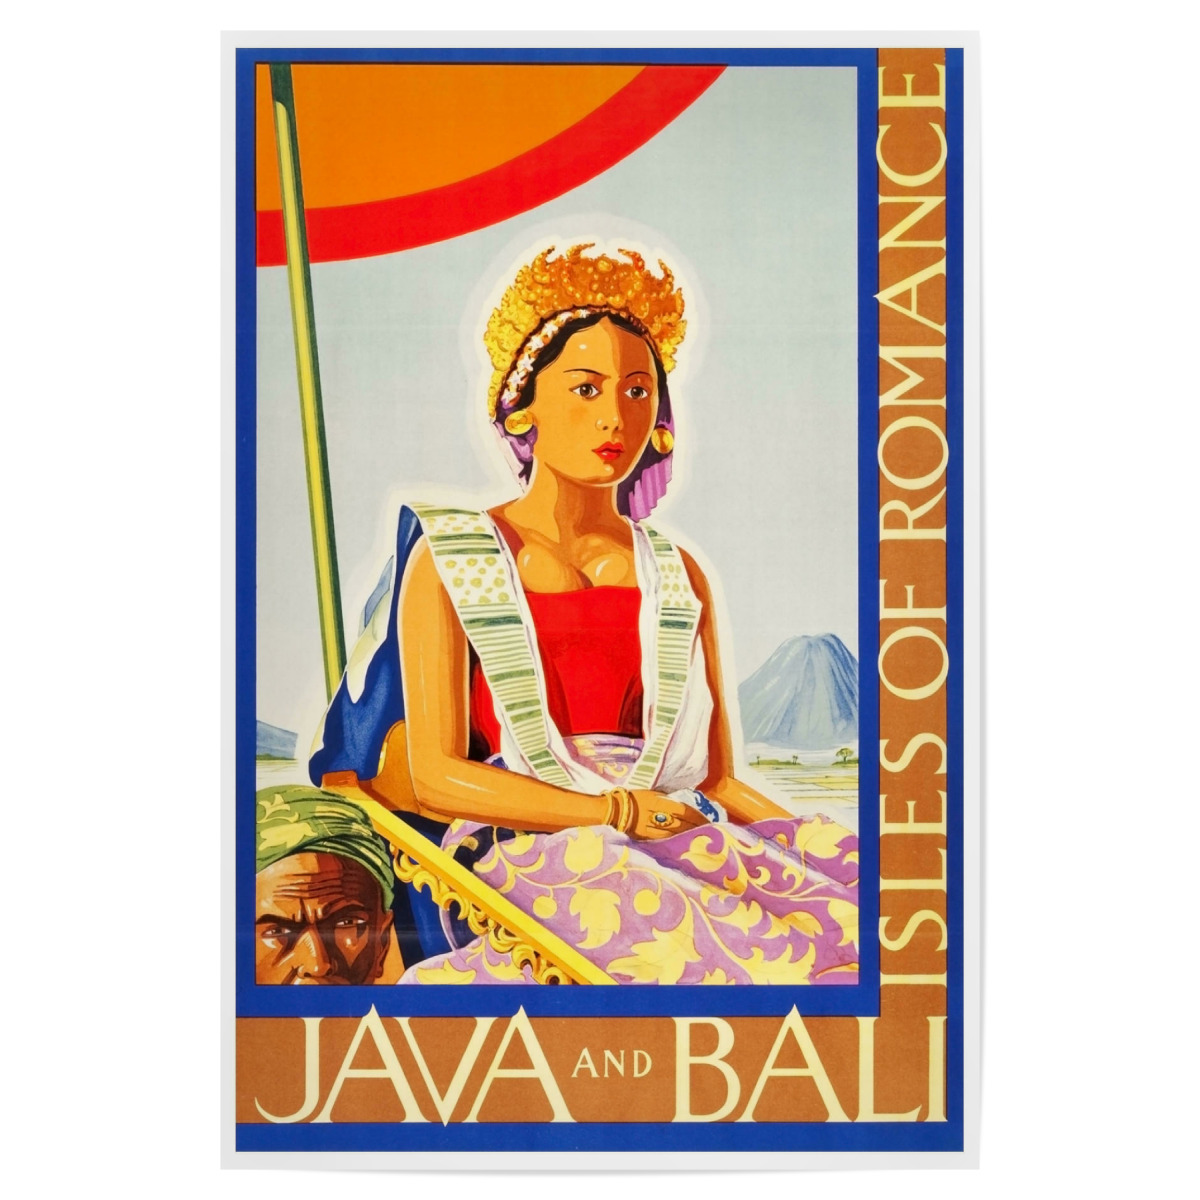 Purchase The Java Art Bali Vintage Travel Poster Home Decor Print As